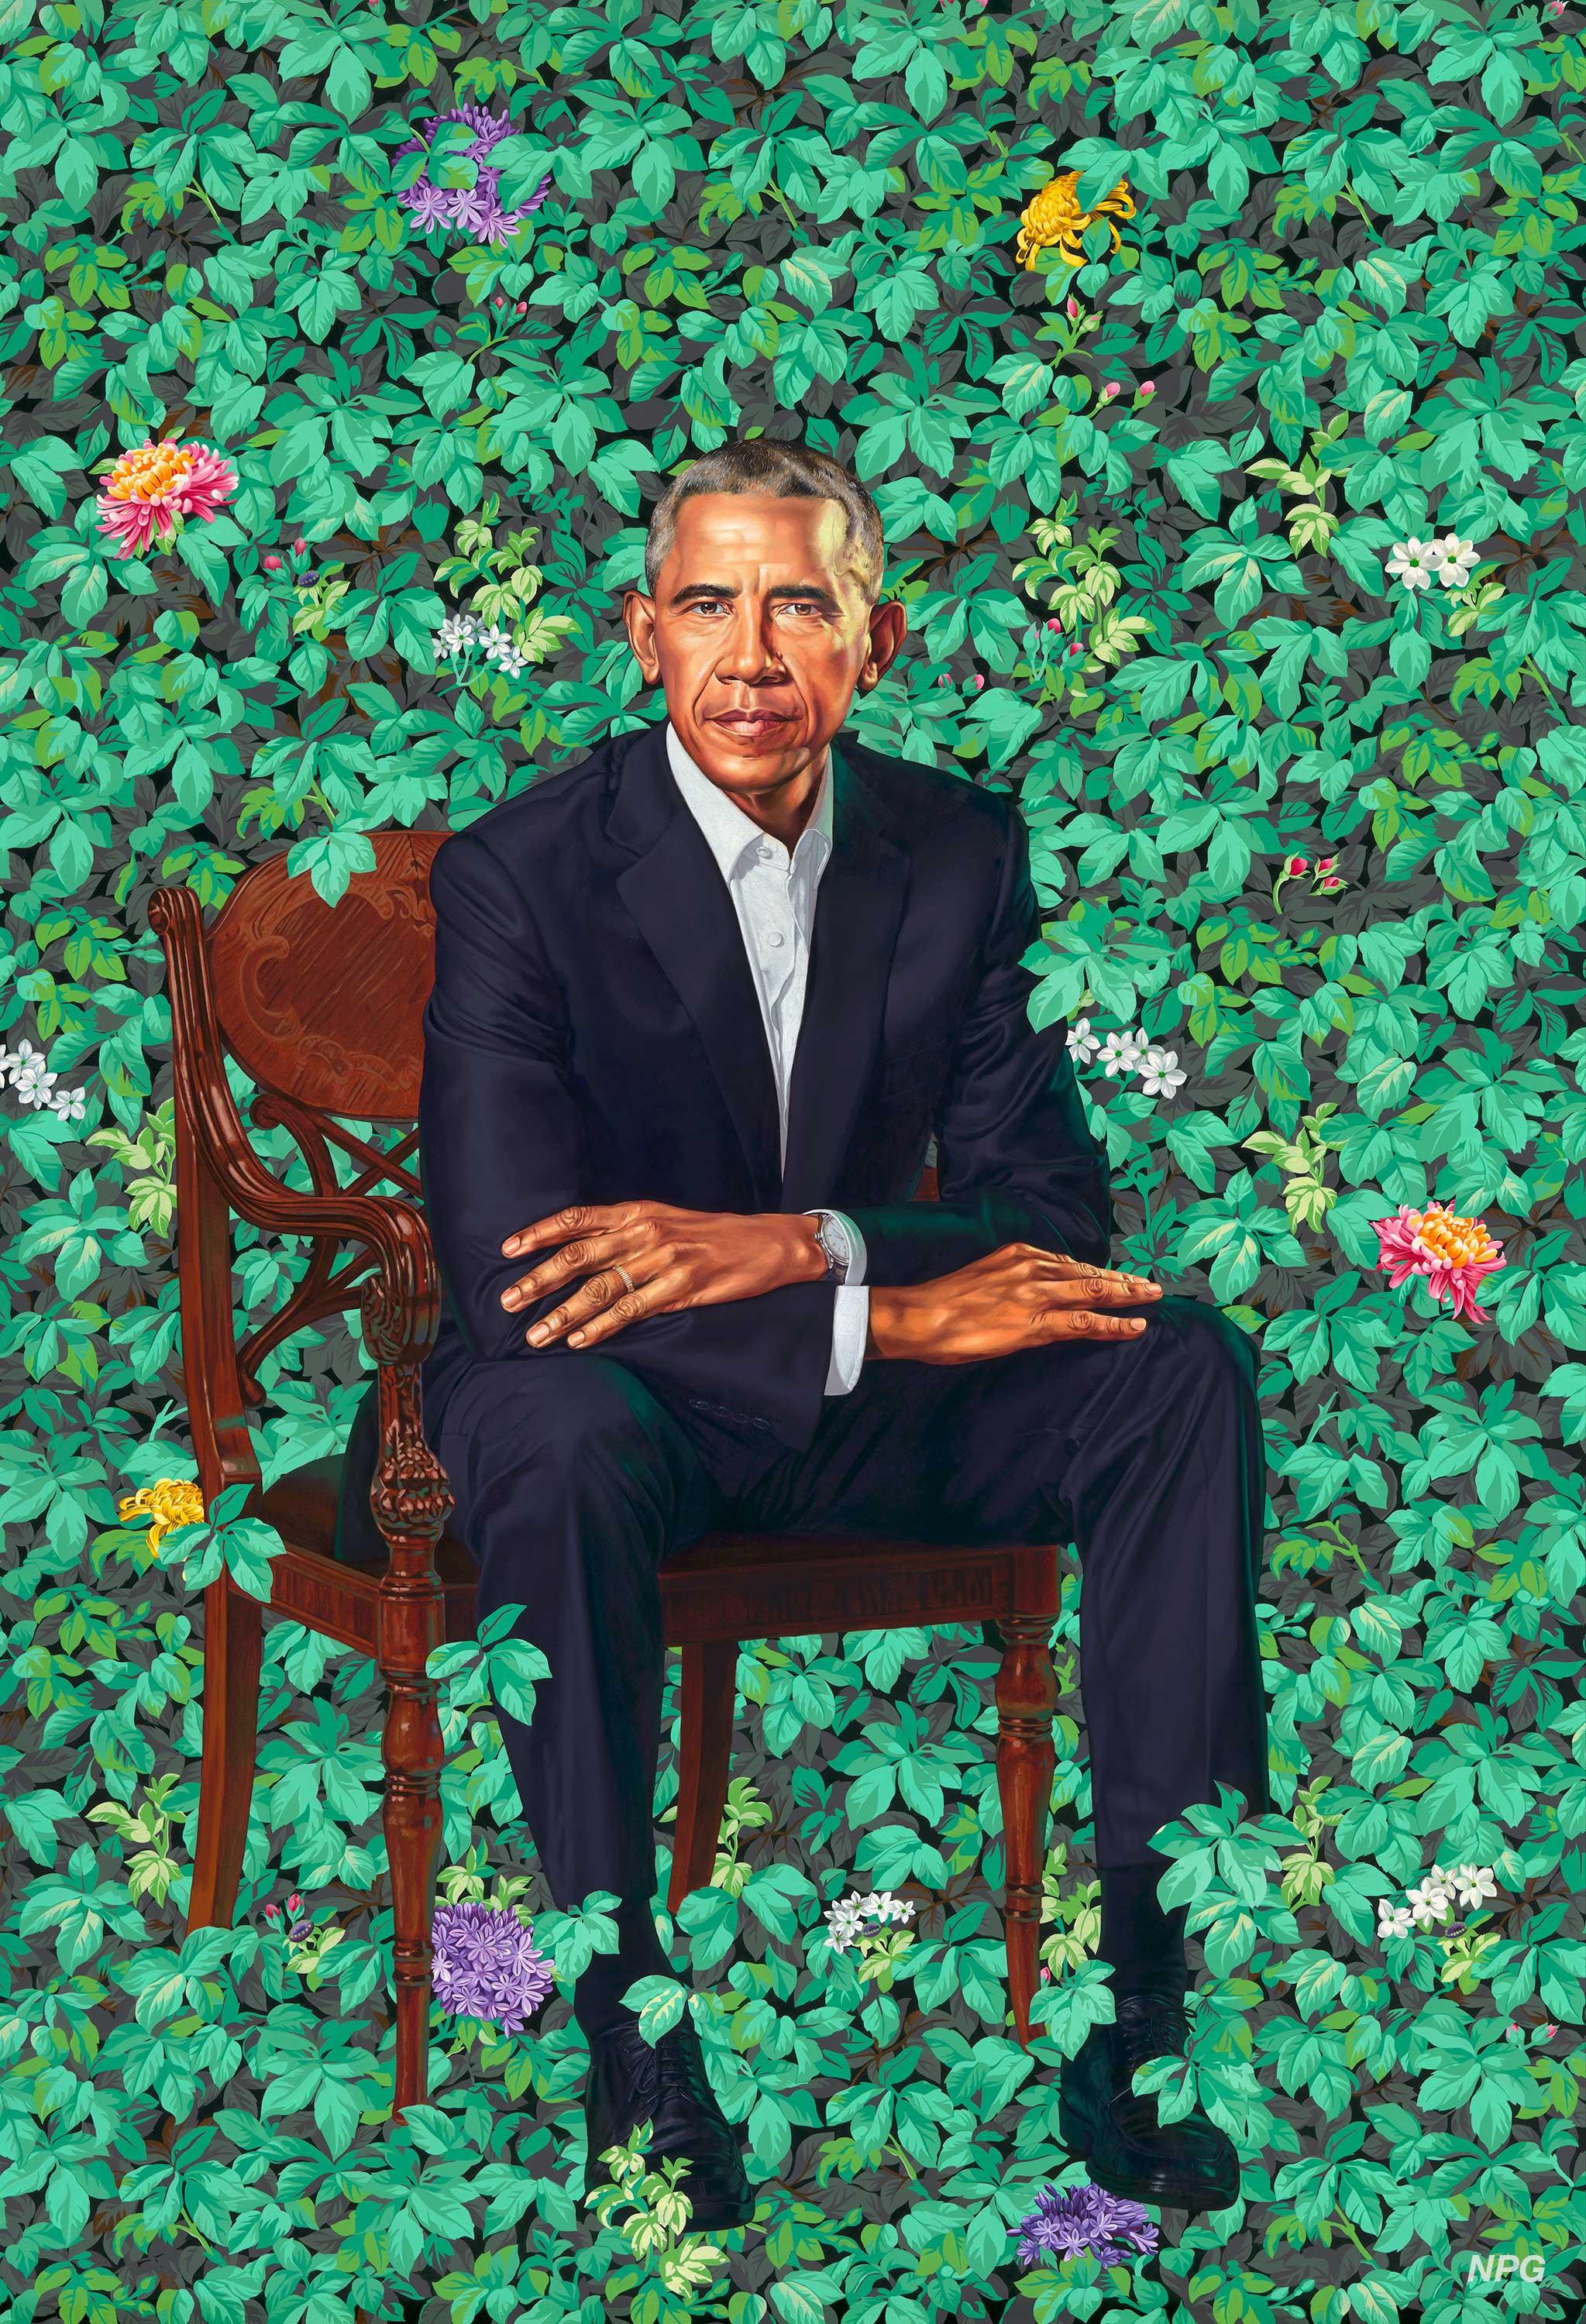 Obama portrait by Kehinde Wiley